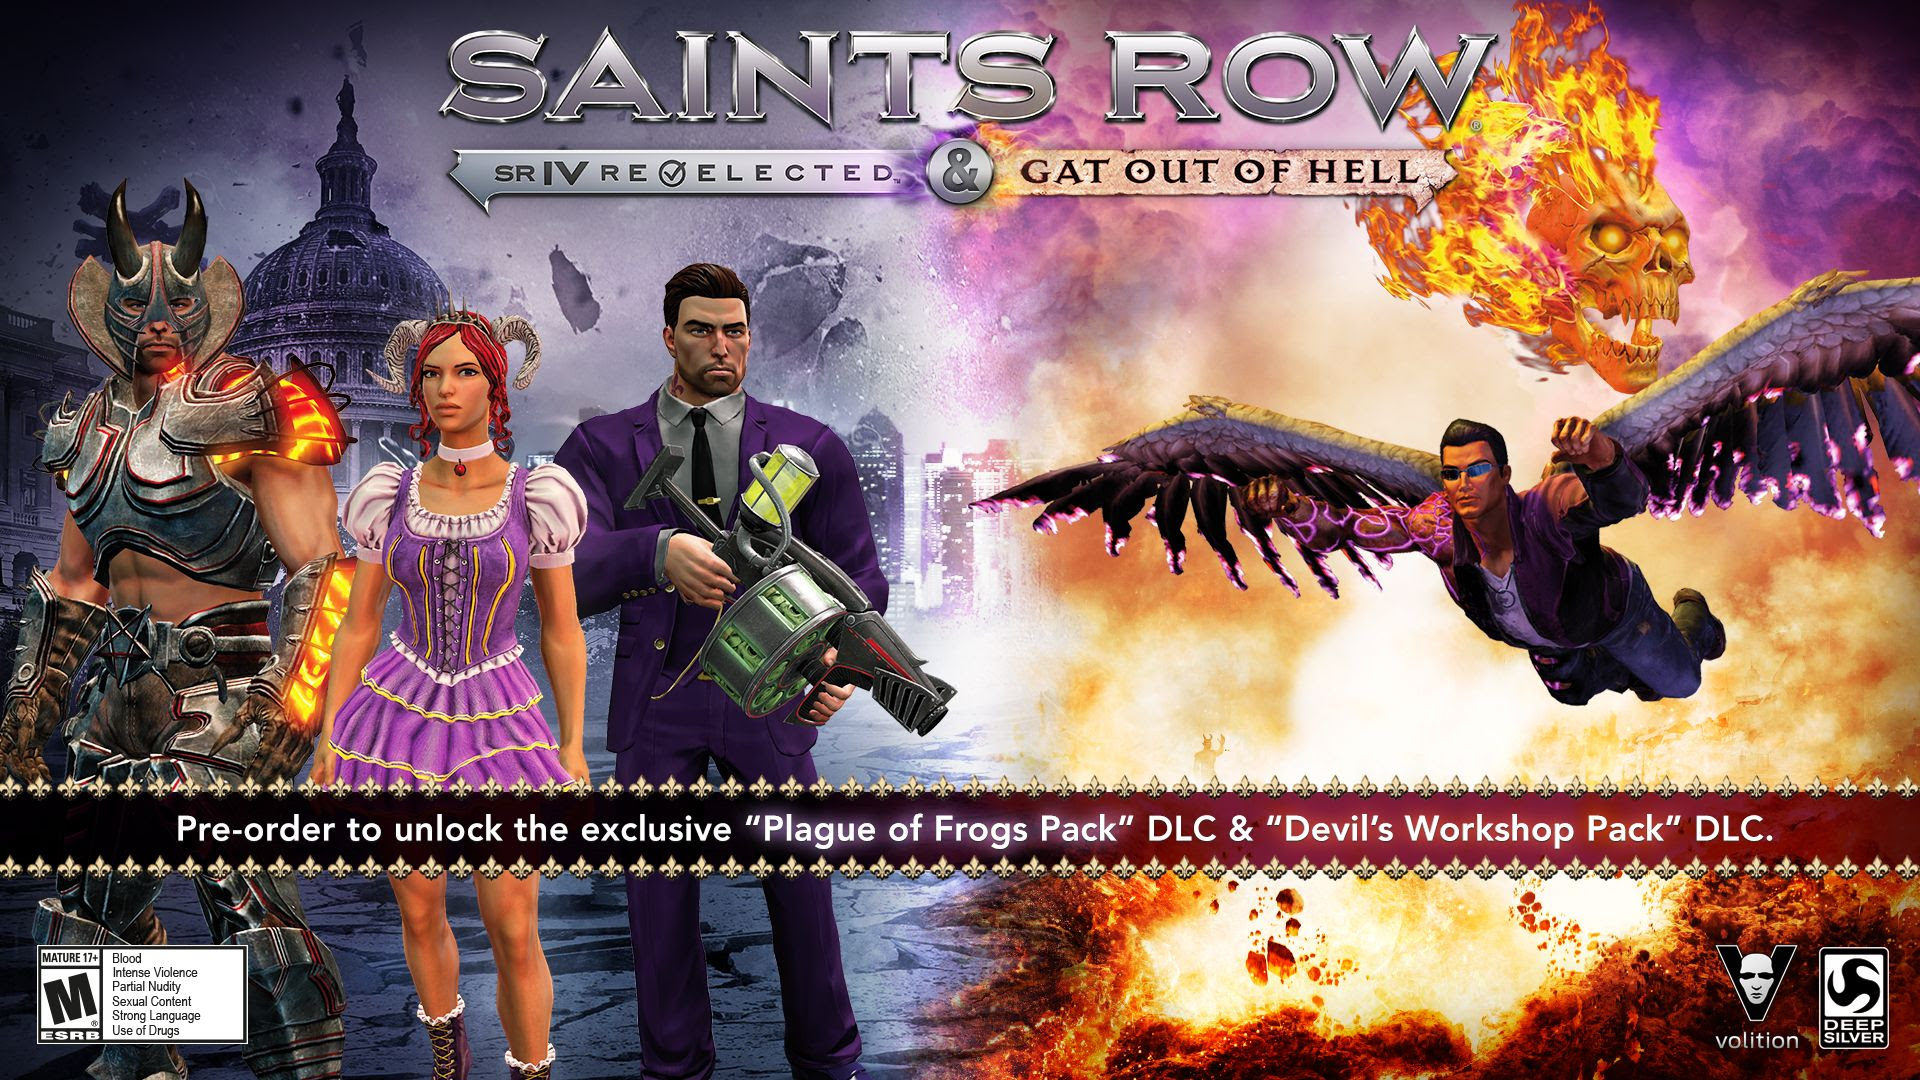 Saints Row Gat Out Of Hell Release Date Moved Forward Crazy